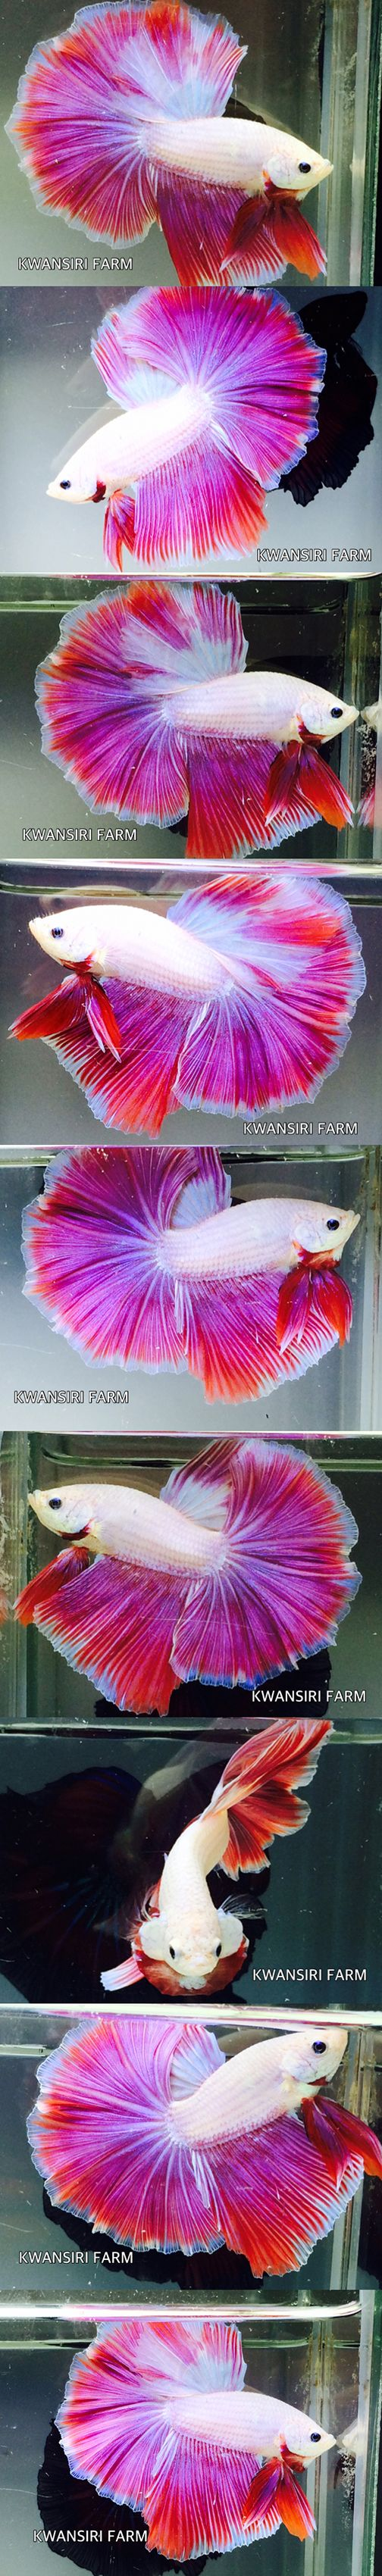 Pink fish tank aquarium with filter - 25 Best Ideas About Pink Fish On Pinterest Jellyfish Jelly Fish And Pretty Fish